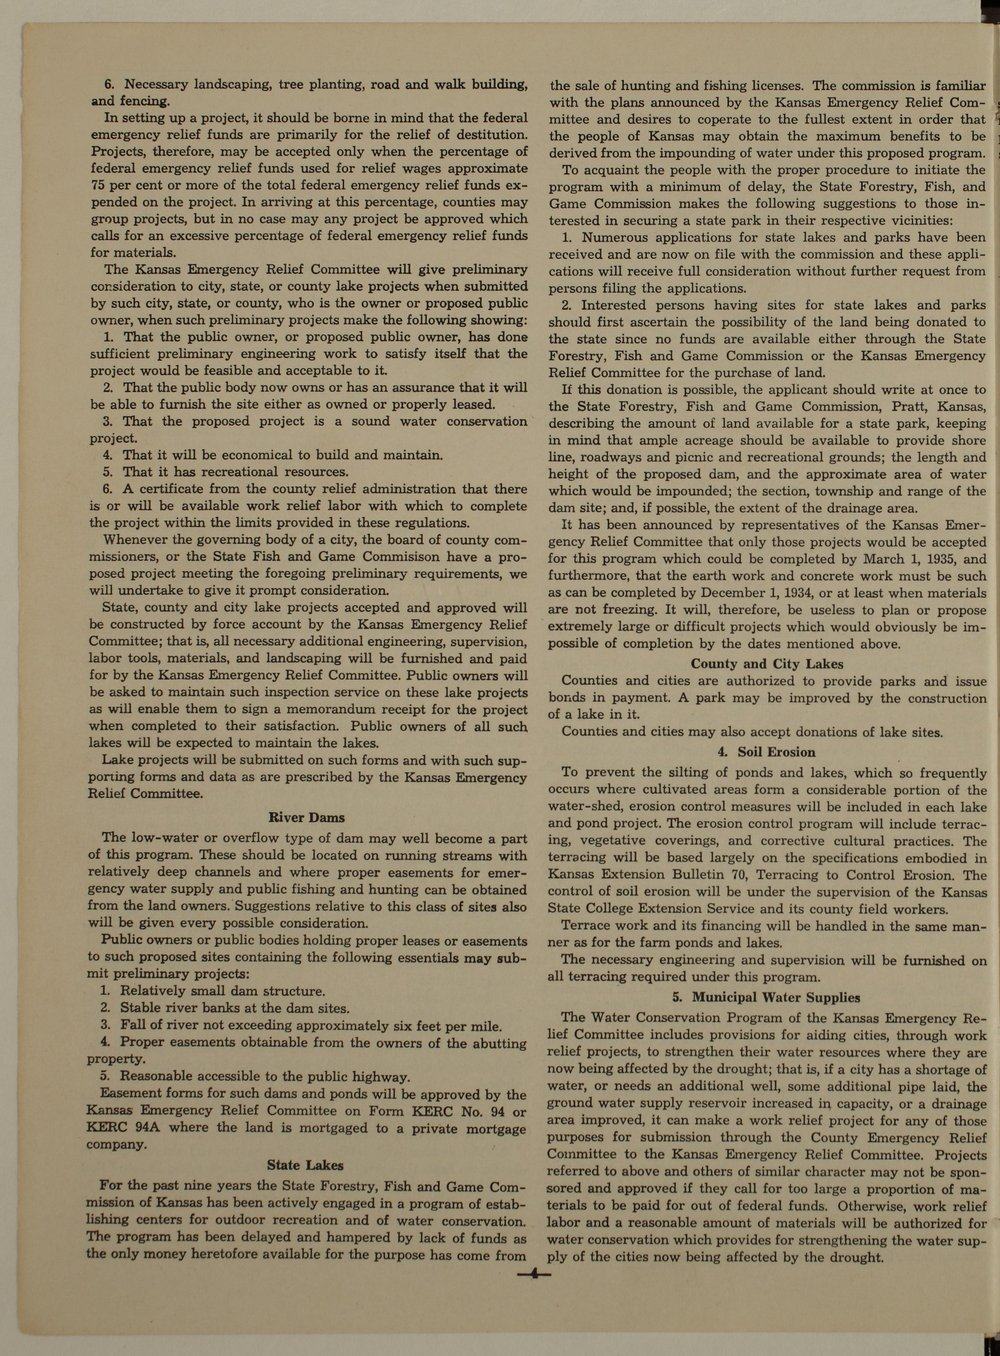 Kansas Emergency Relief Committee, bulletin 72 - 4